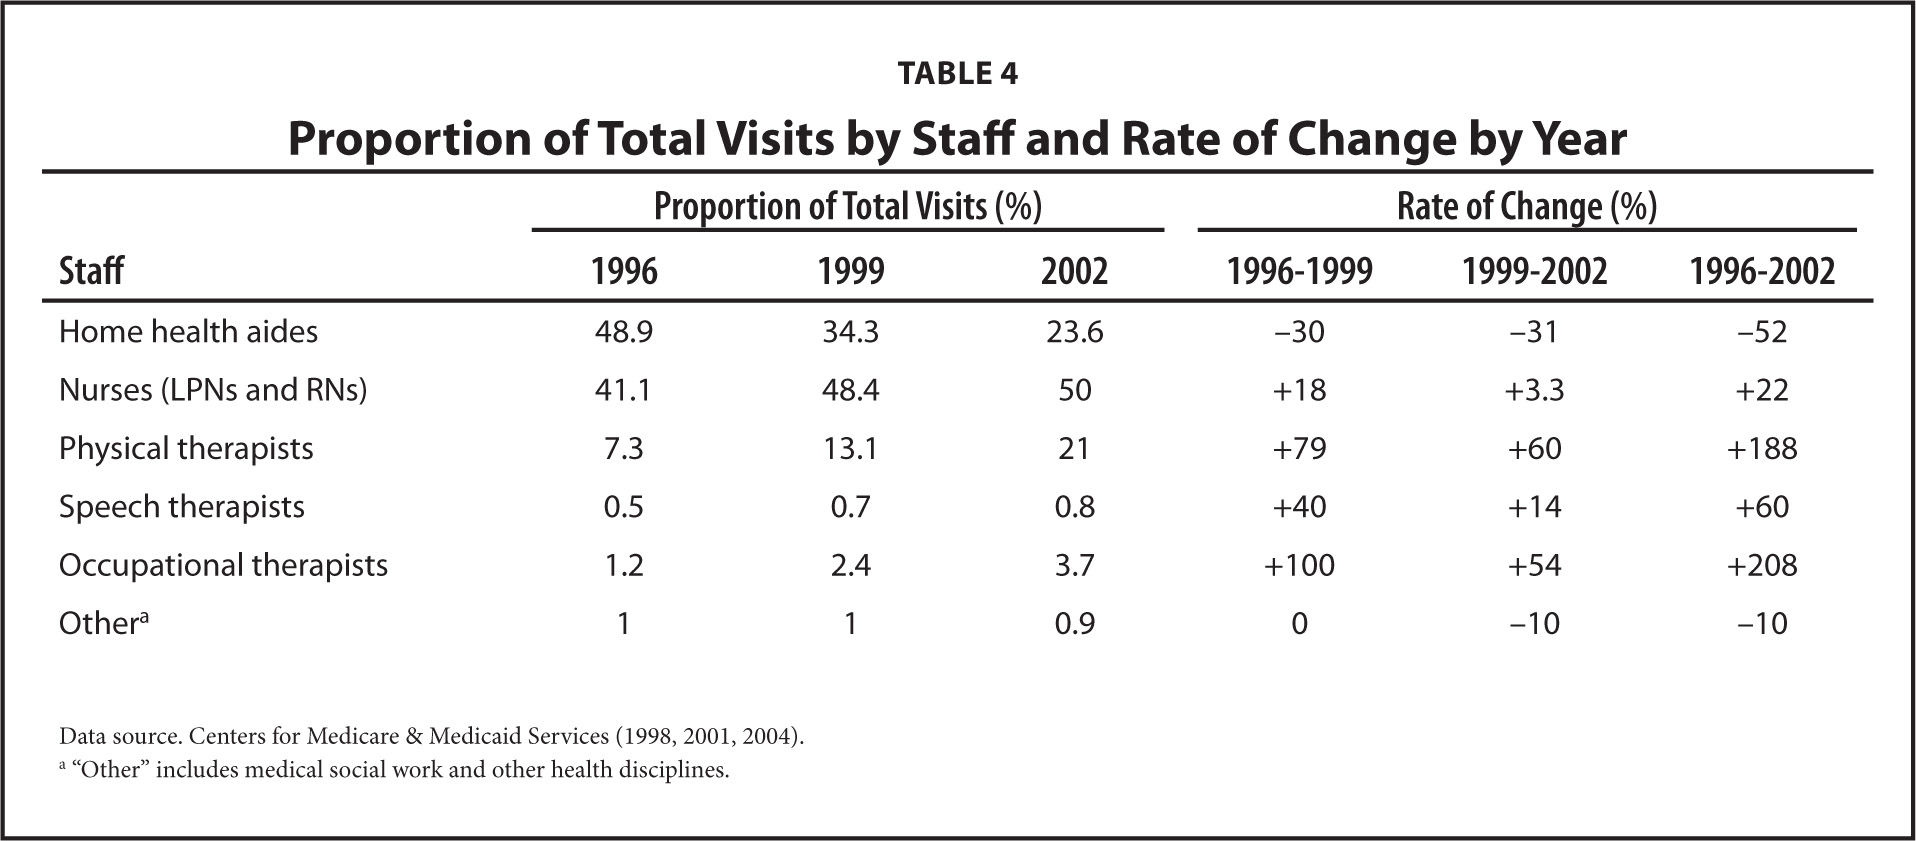 Proportion of Total Visits by Staff and Rate of Change by Year